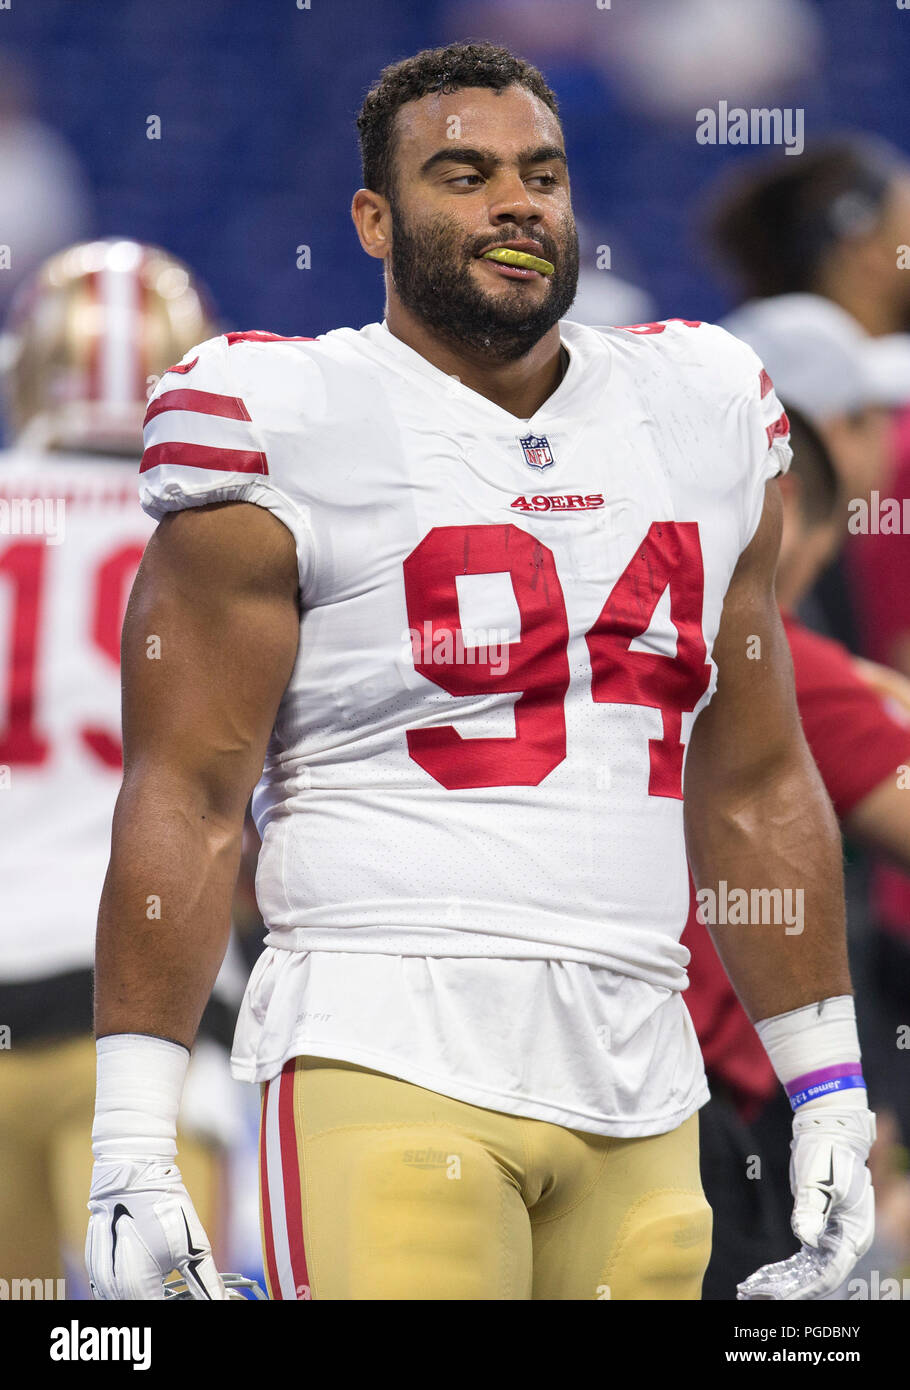 54594b048 August 25, 2018: San Francisco 49ers defensive lineman Solomon Thomas (94)  during NFL football preseason game action between the San Francisco 49ers  and the ...